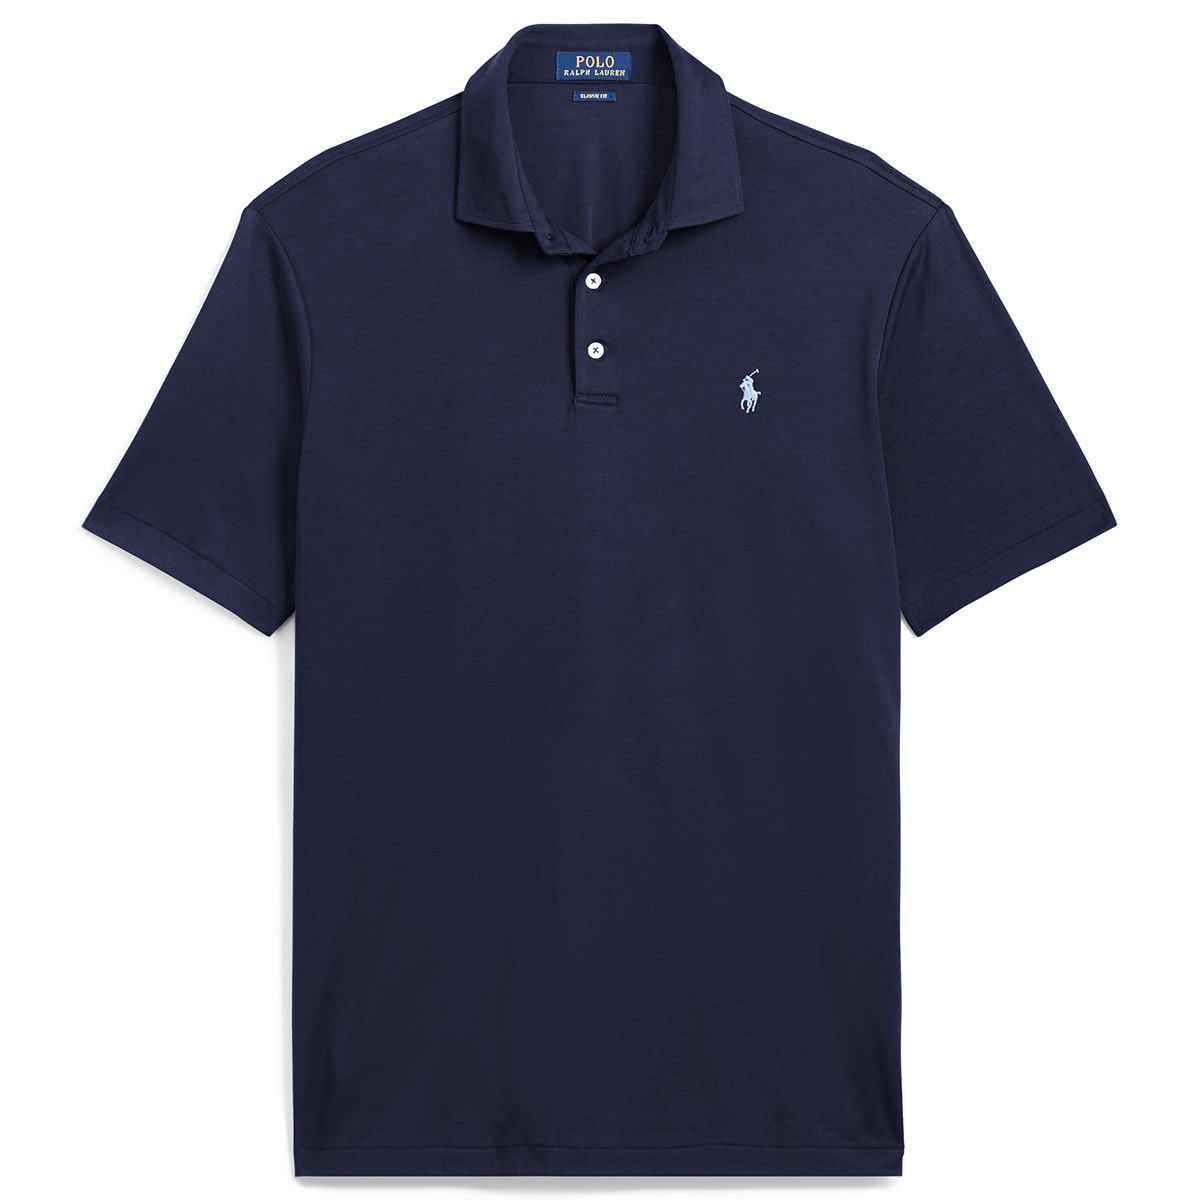 8e8648c6c9fa09 Polo Ralph Lauren - Men s Clothing and Shoes - Macy s